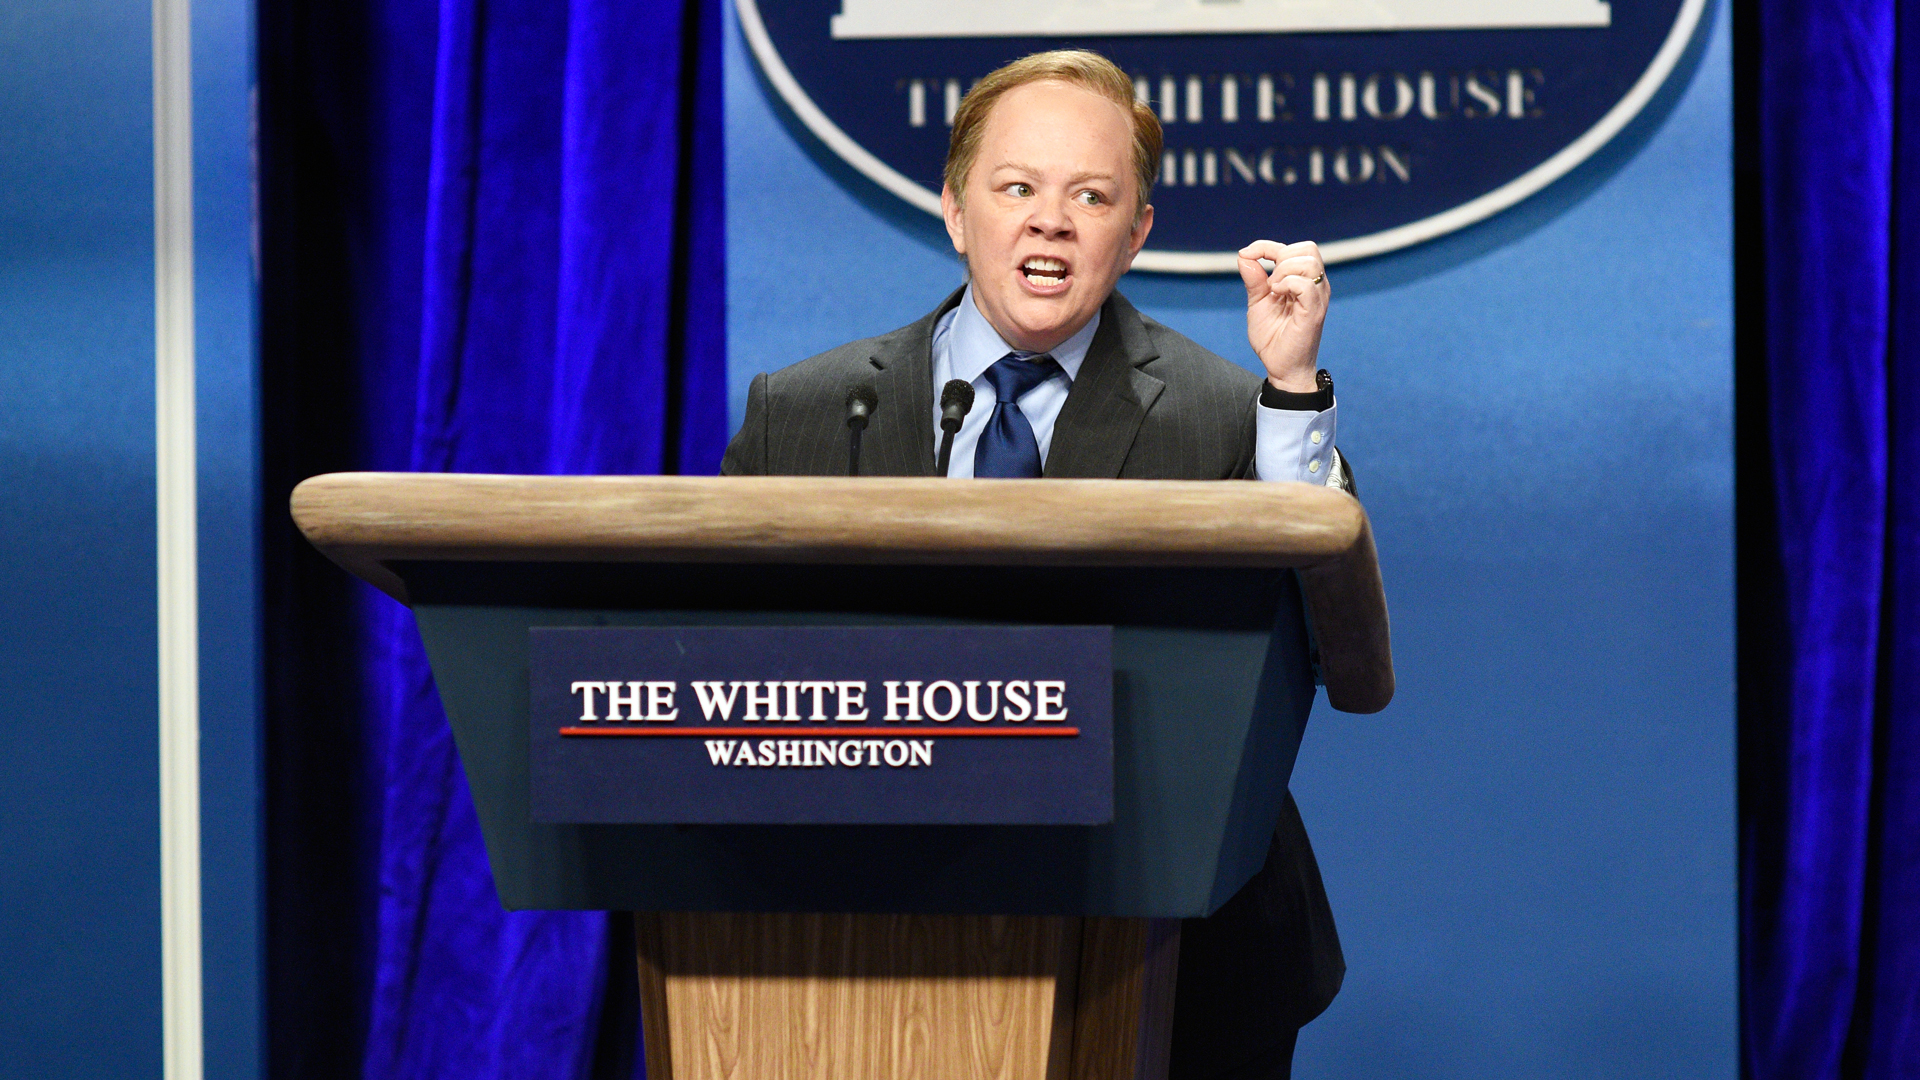 Watch Sean Spicer Press Conference From Saturday Night Live - NBC.com